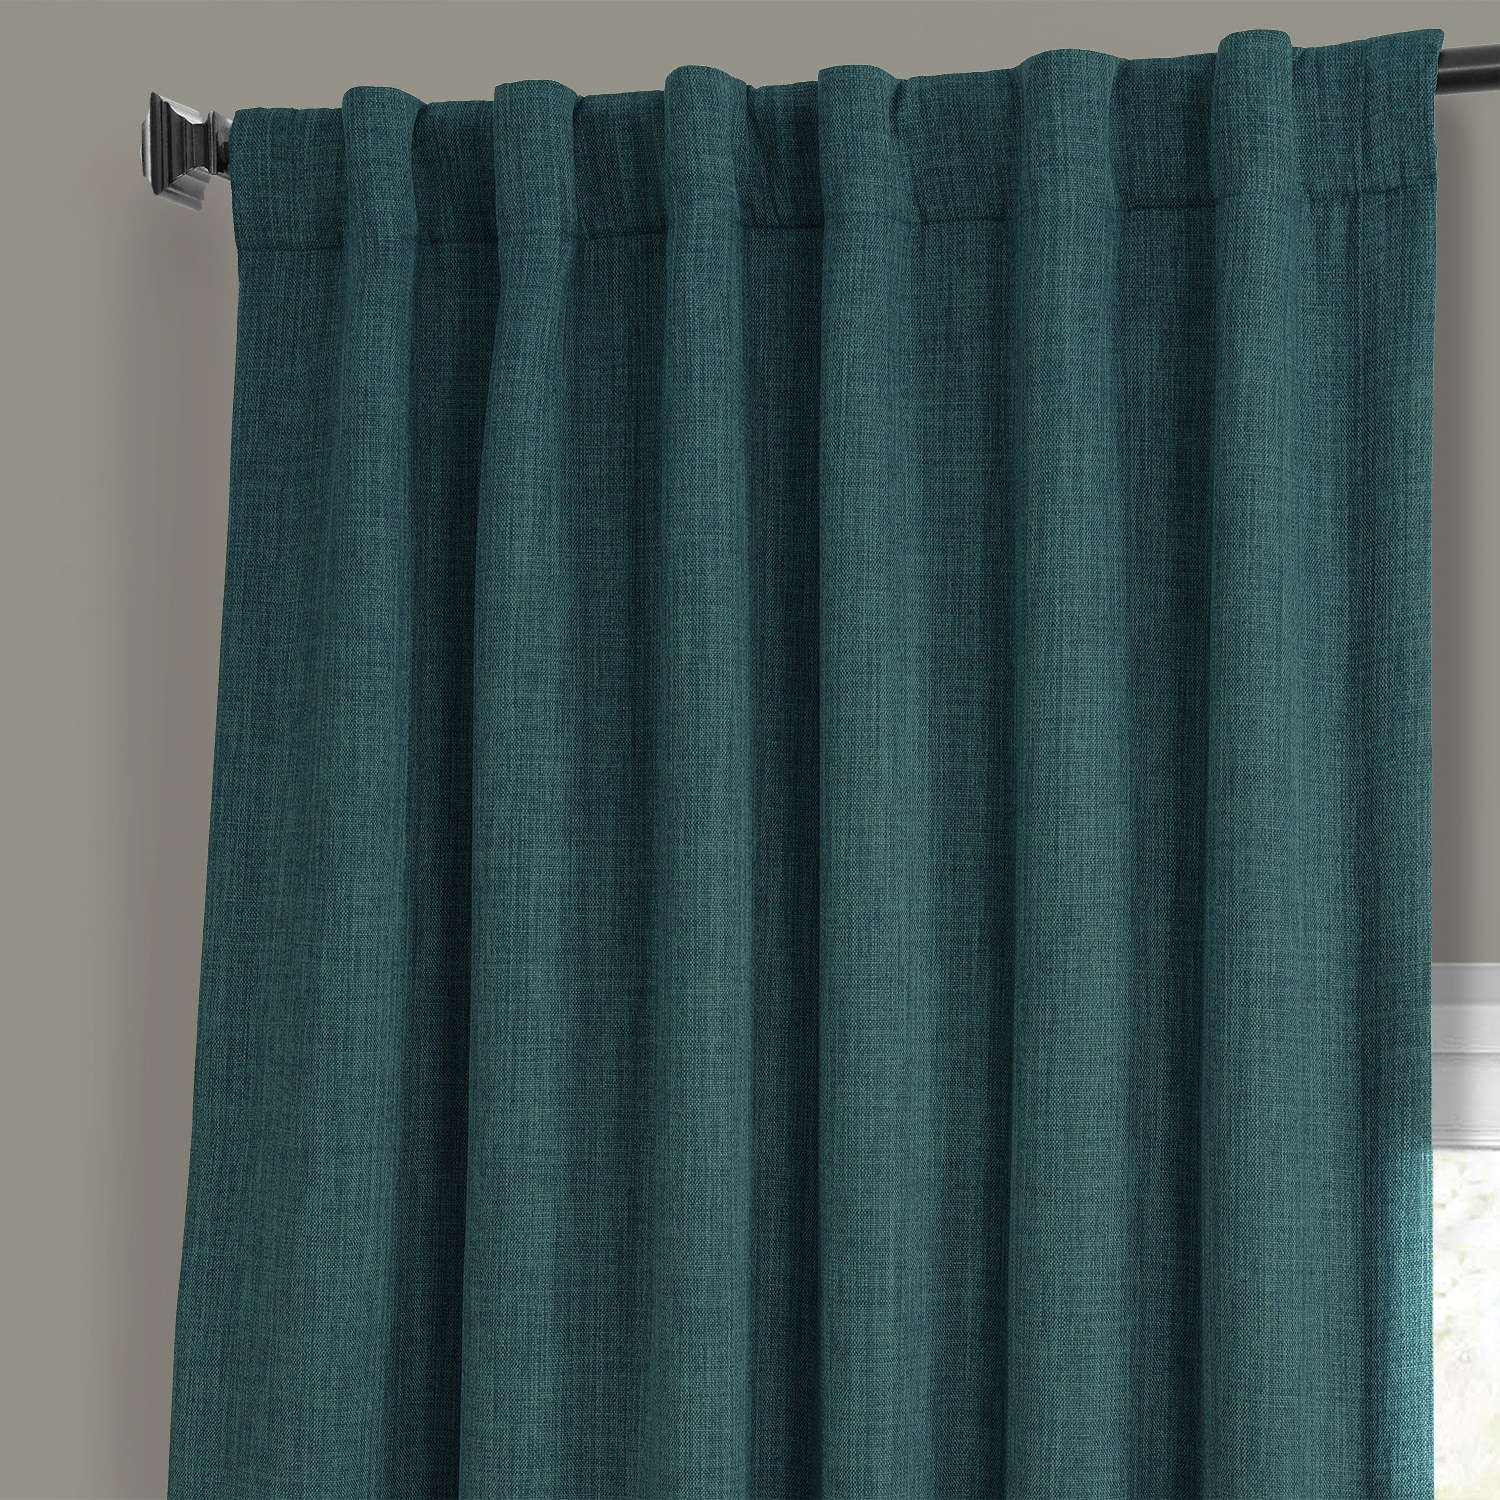 Slate Teal Faux Linen Blackout Curtain